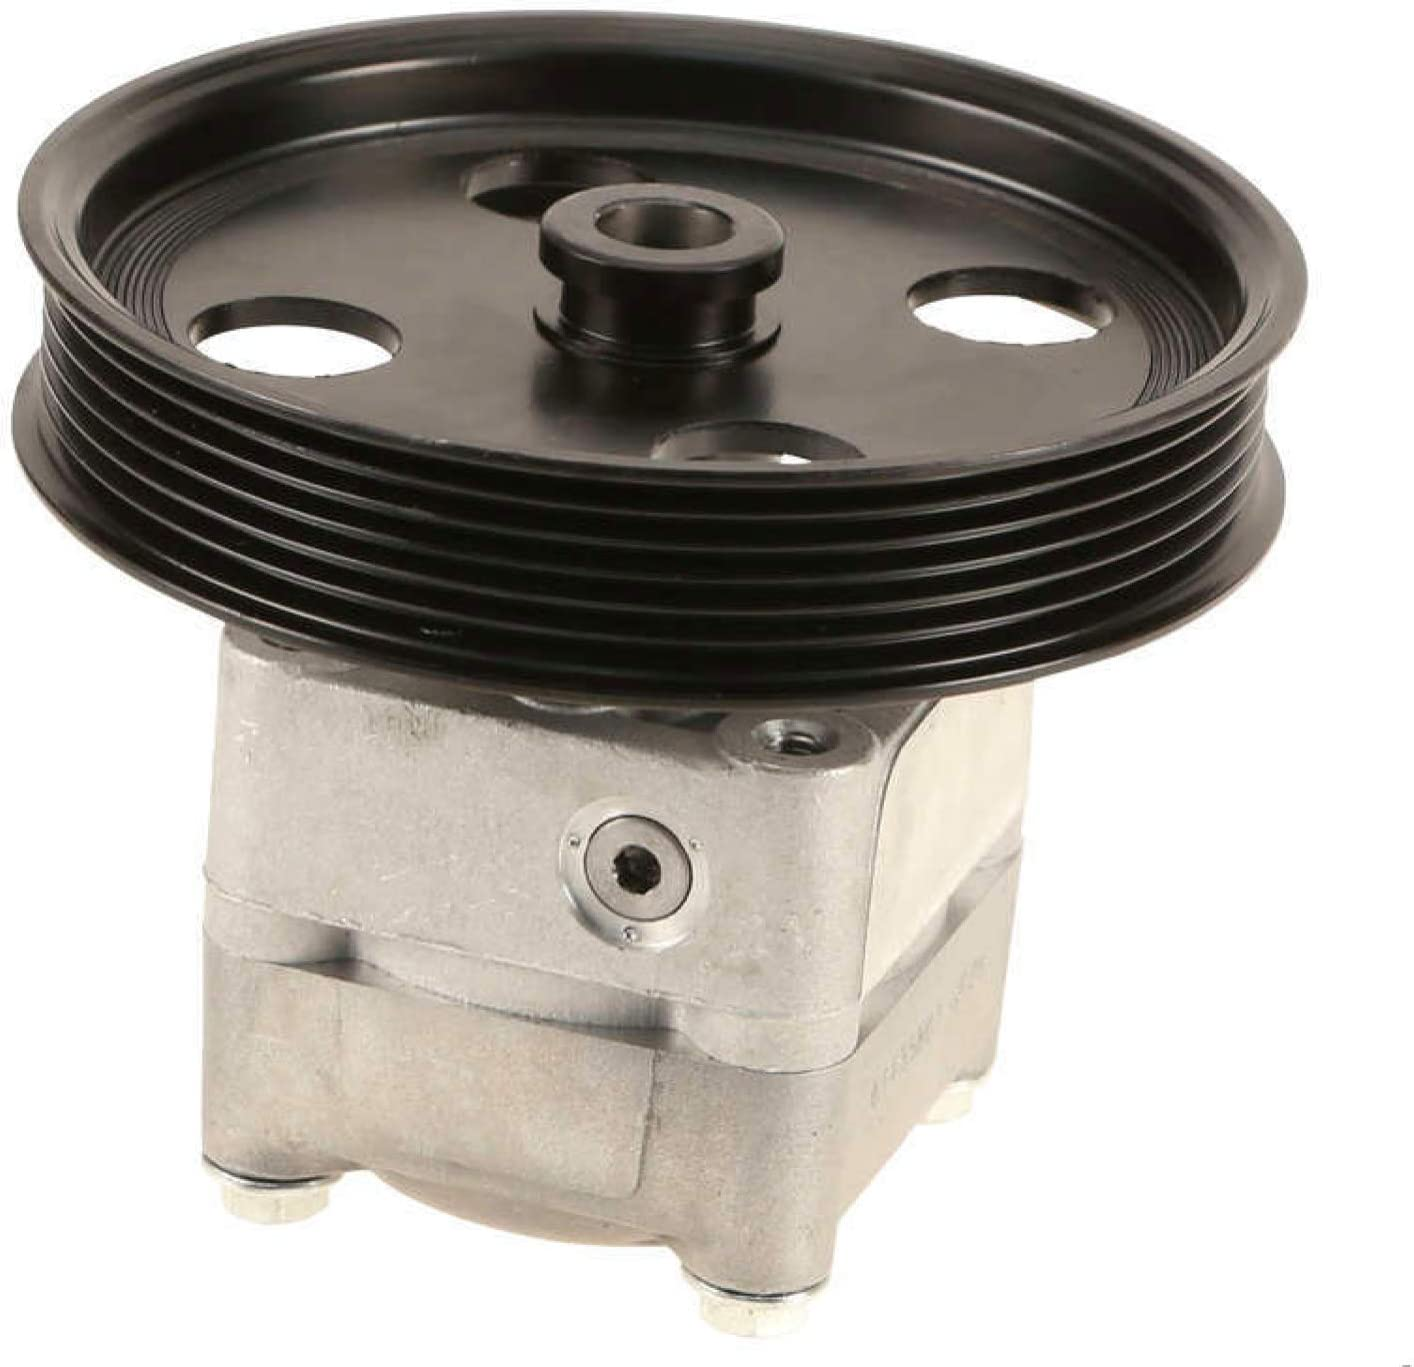 New Power Steering Pump for 1999-2005 Volvo C70 S60 S70 S80 V70 XC70 W// Pulley